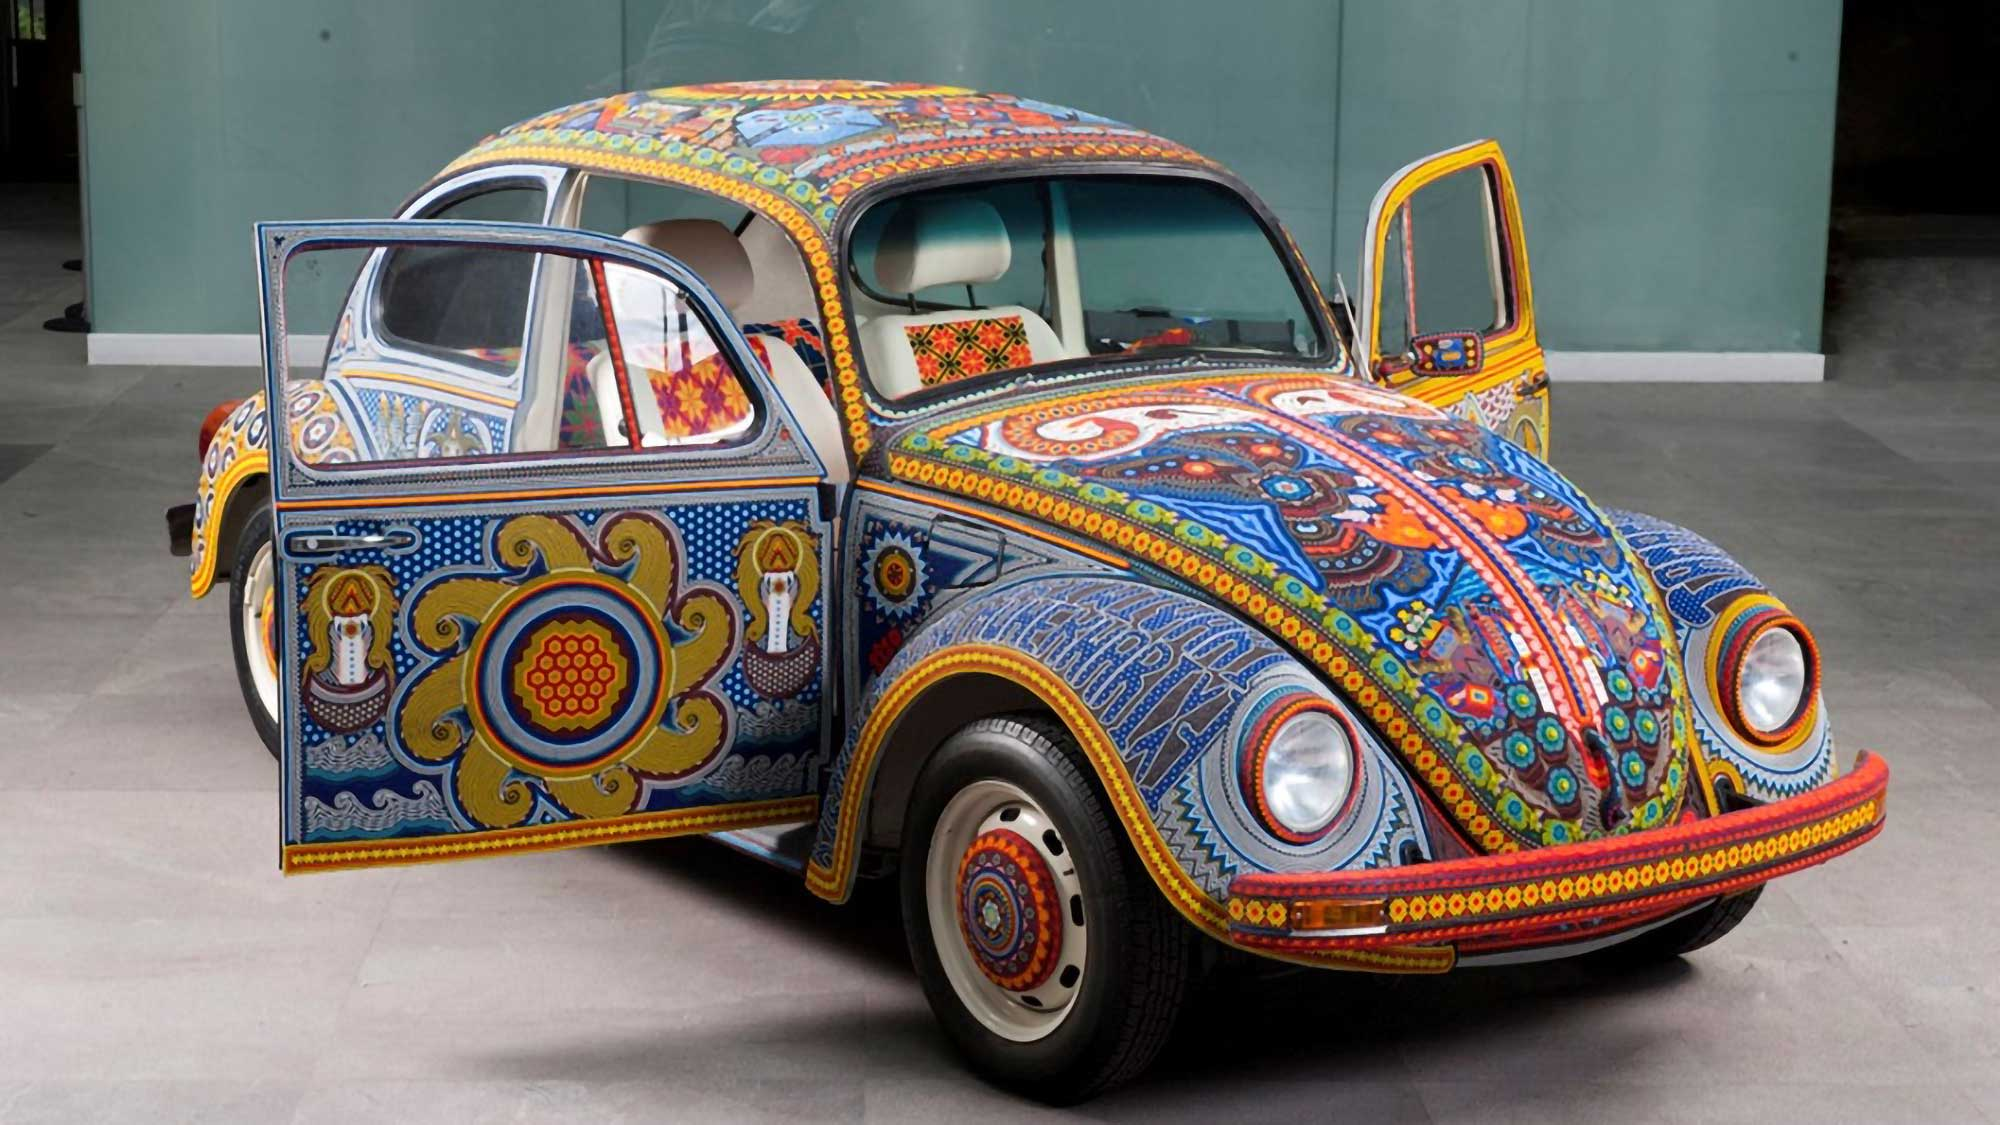 1990 Volkswagen Beetle Covered in Glass Beads